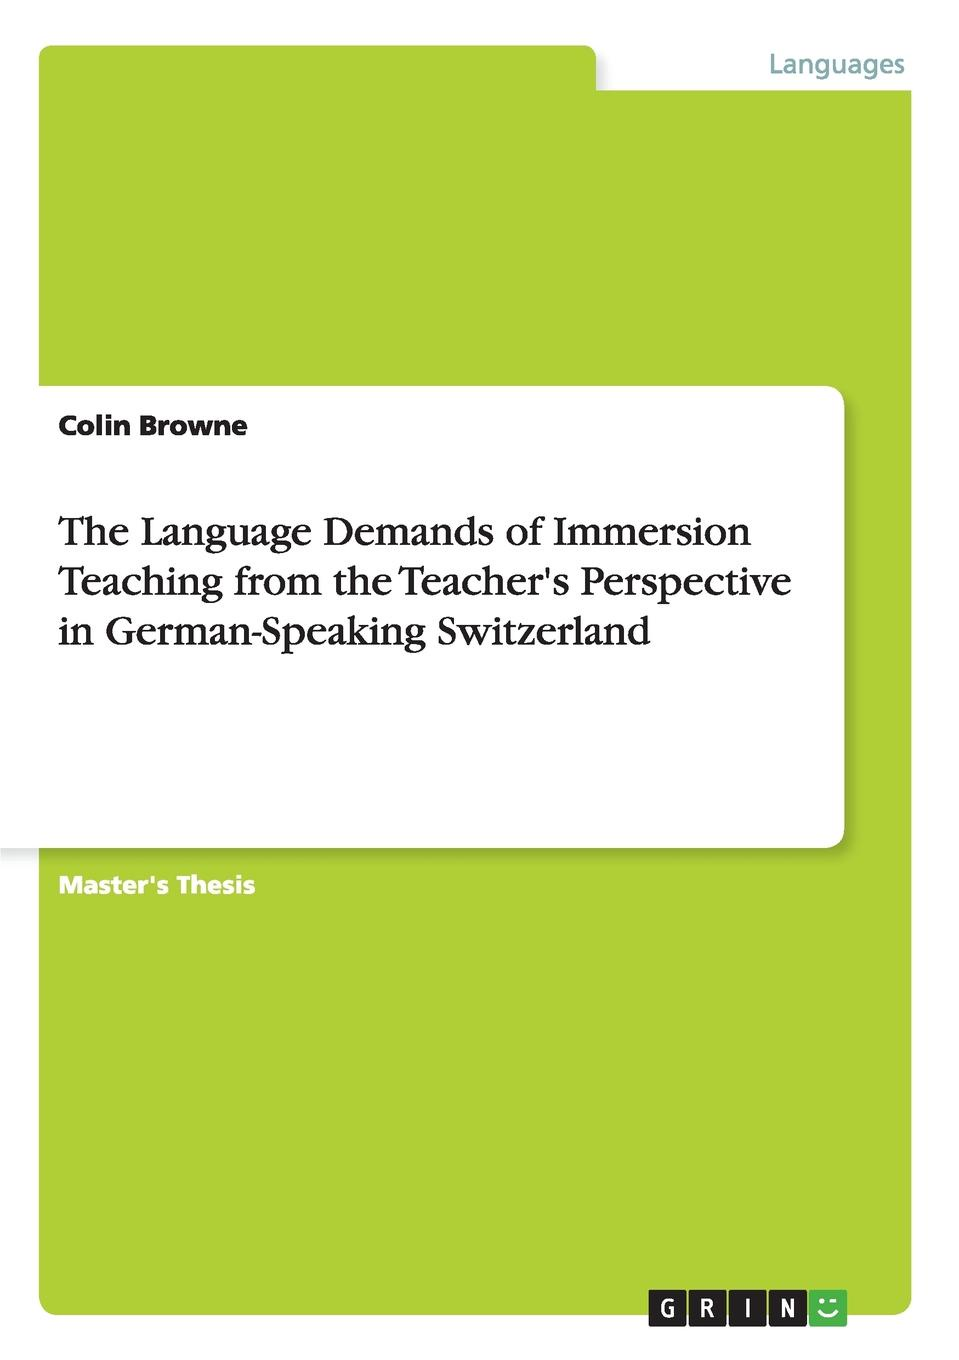 Colin Browne The Language Demands of Immersion Teaching from the Teacher.s Perspective in German-Speaking Switzerland